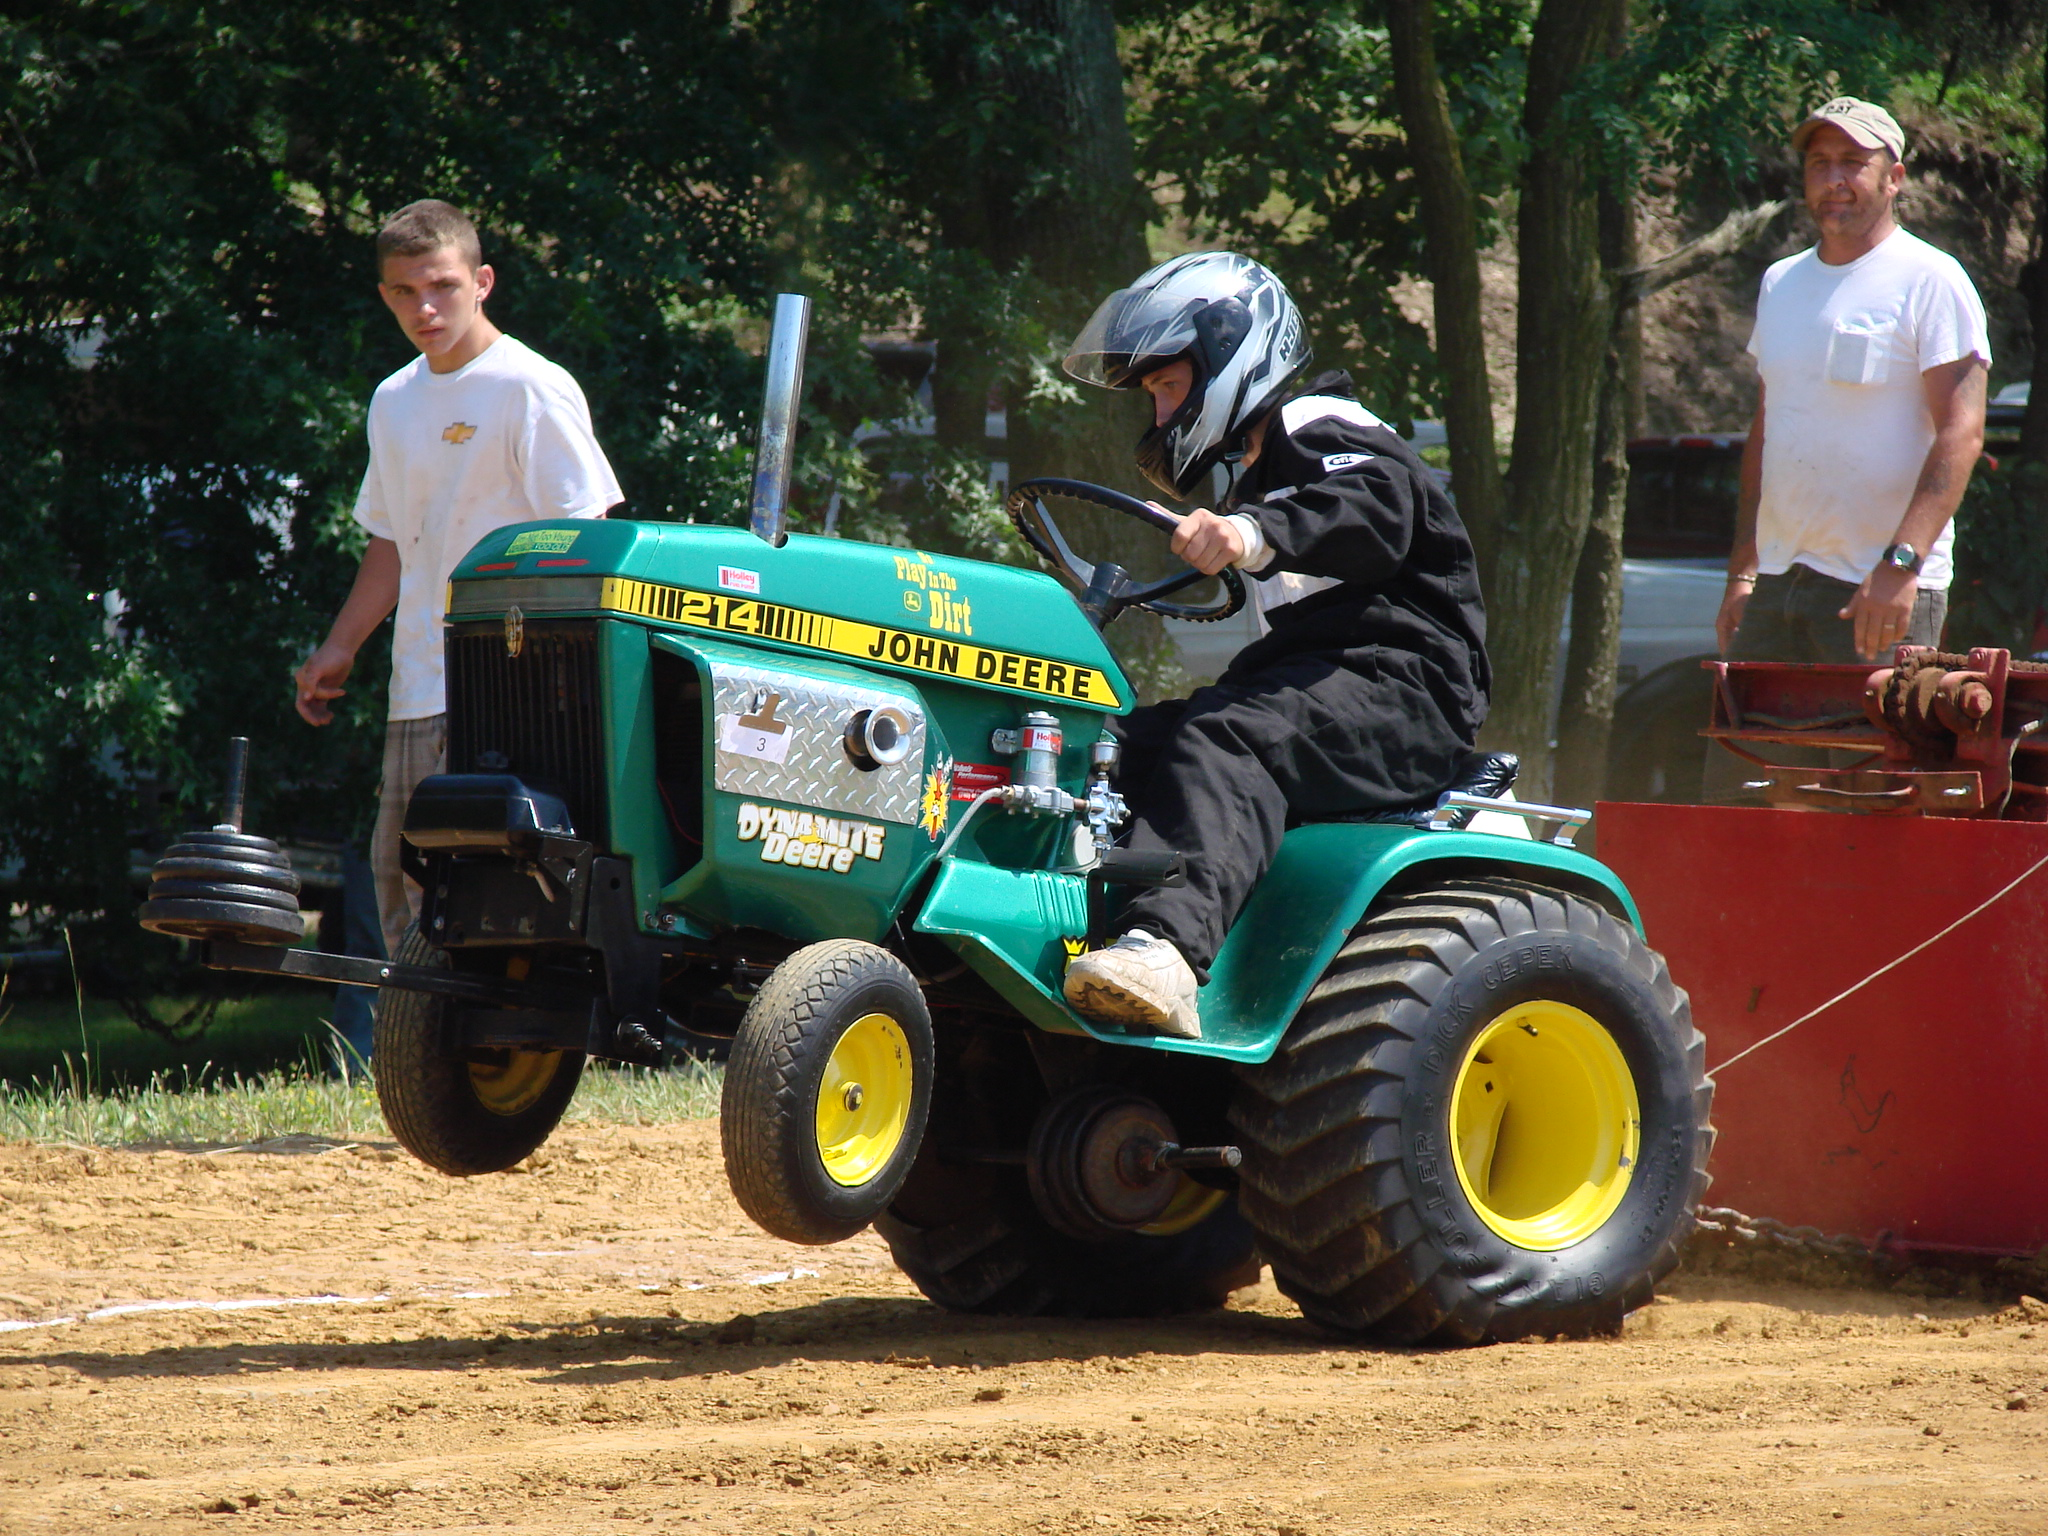 Two Top Garden Tractor Pull 6-27-09 160